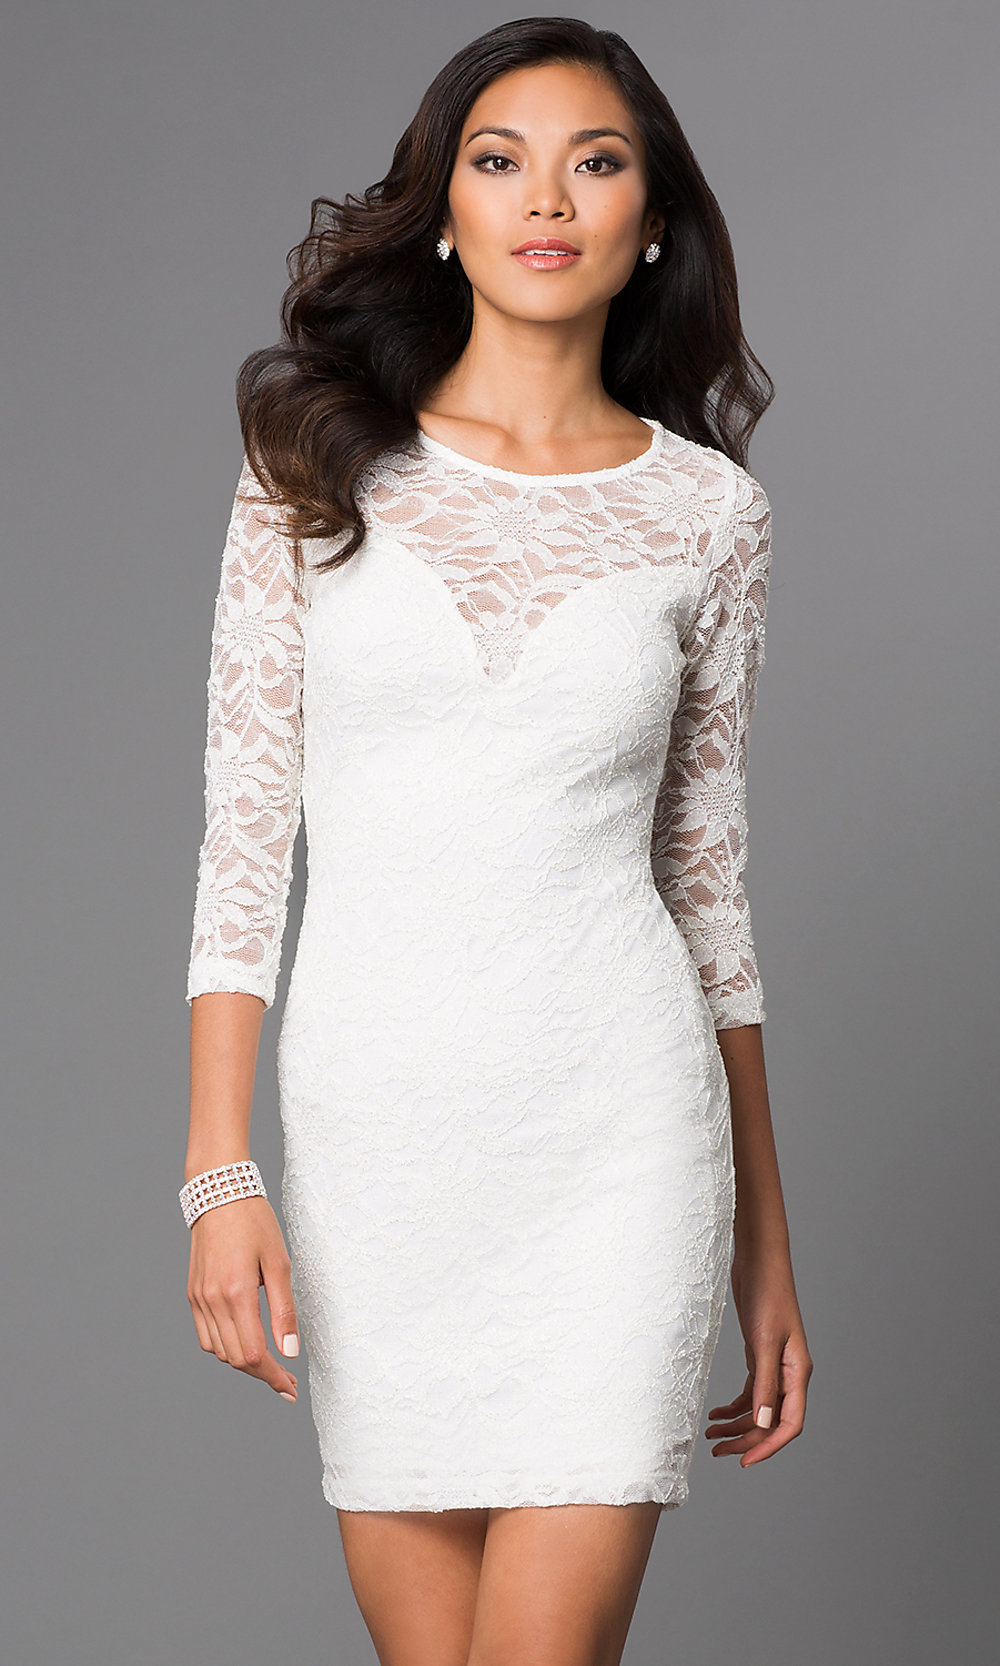 Short Lace Ivory-White Party Dress - PromGirl